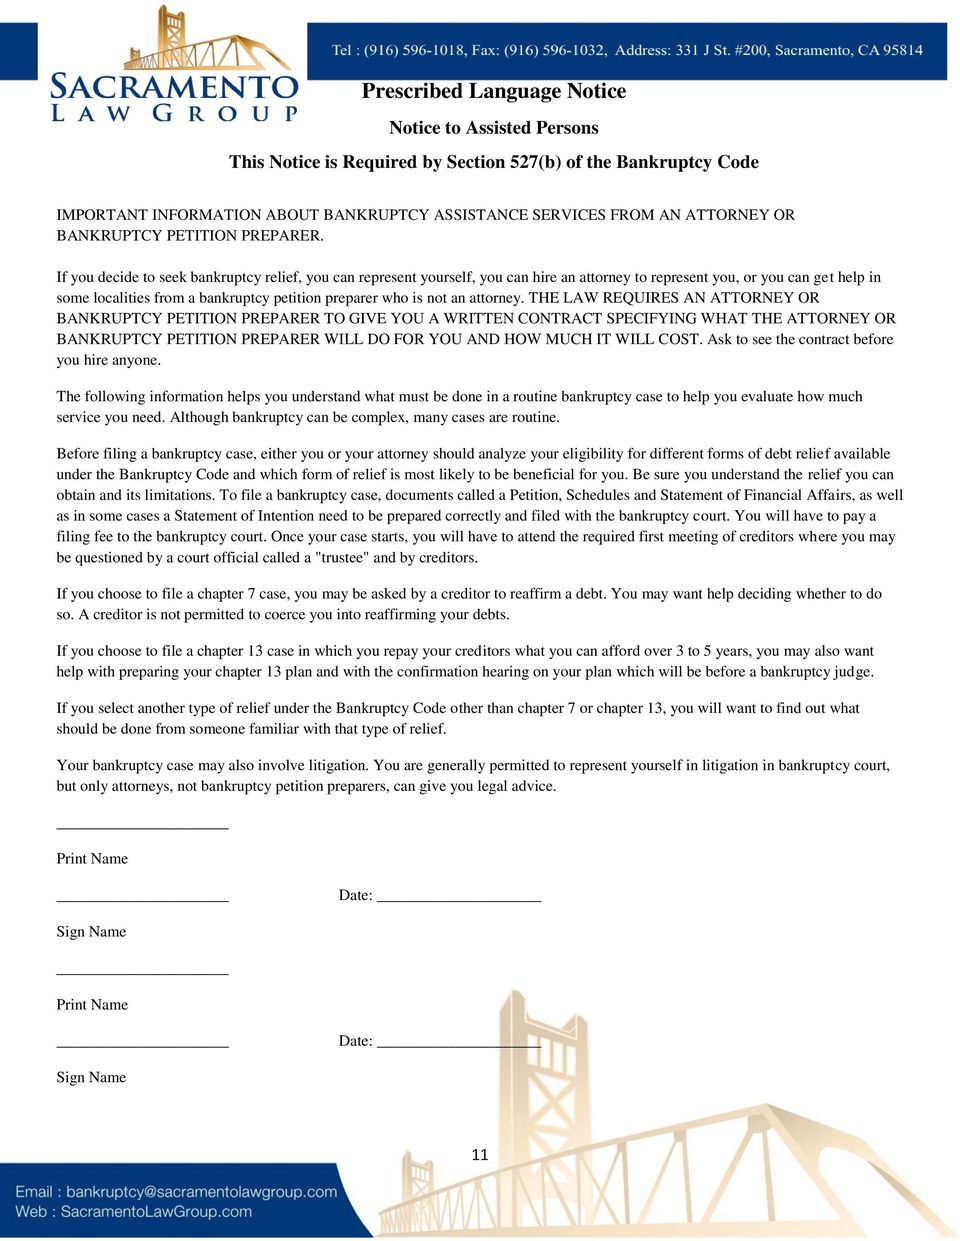 If you decide to seek bankruptcy relief, you can represent yourself, you can hire an attorney to represent you, or you can get help in some localities from a bankruptcy petition preparer who is not